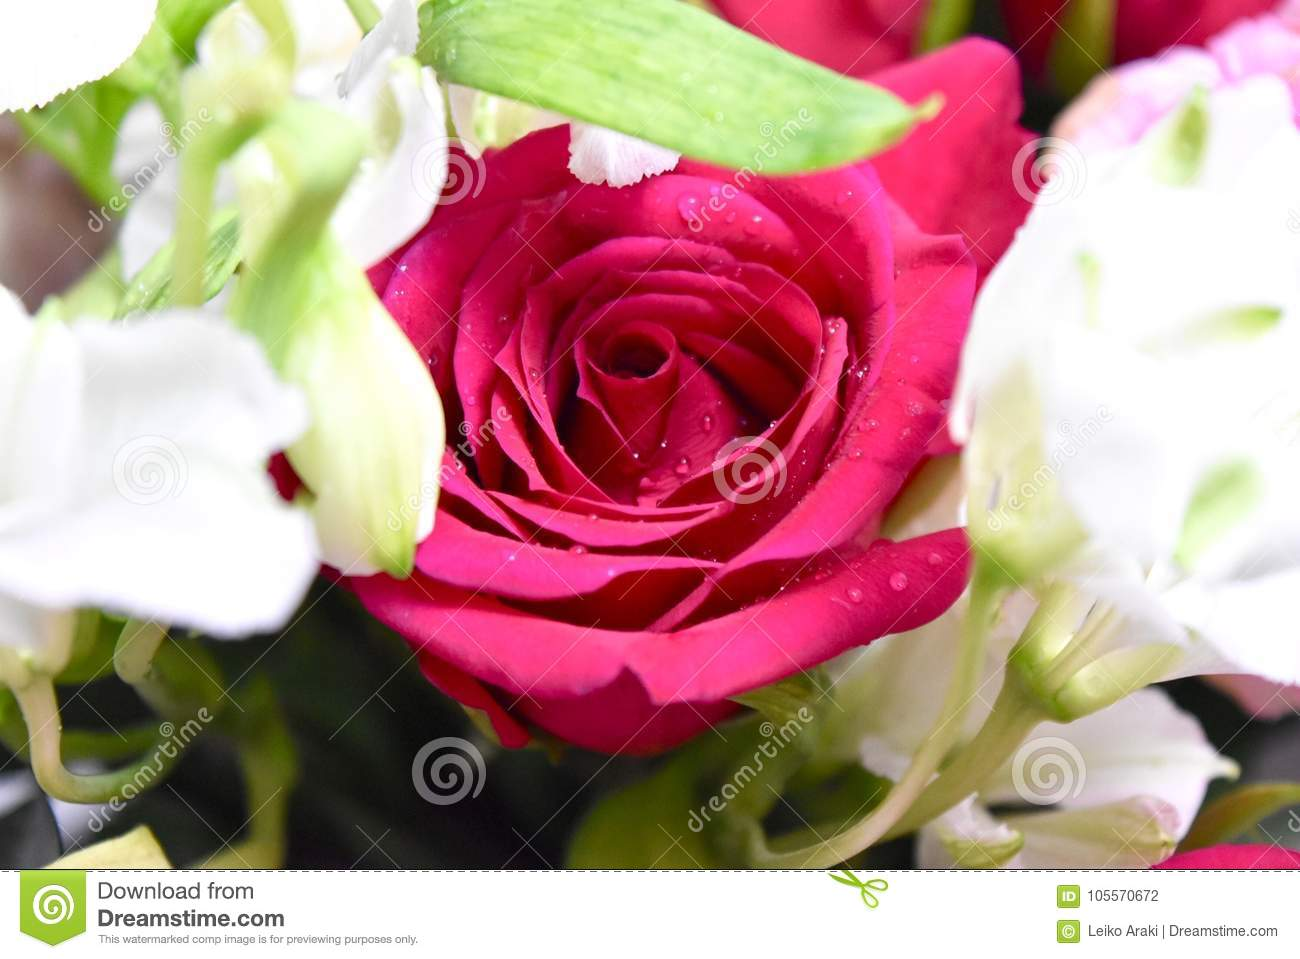 Flowers Two Colors Red And White Roses Stock Photo - Image of flower ...